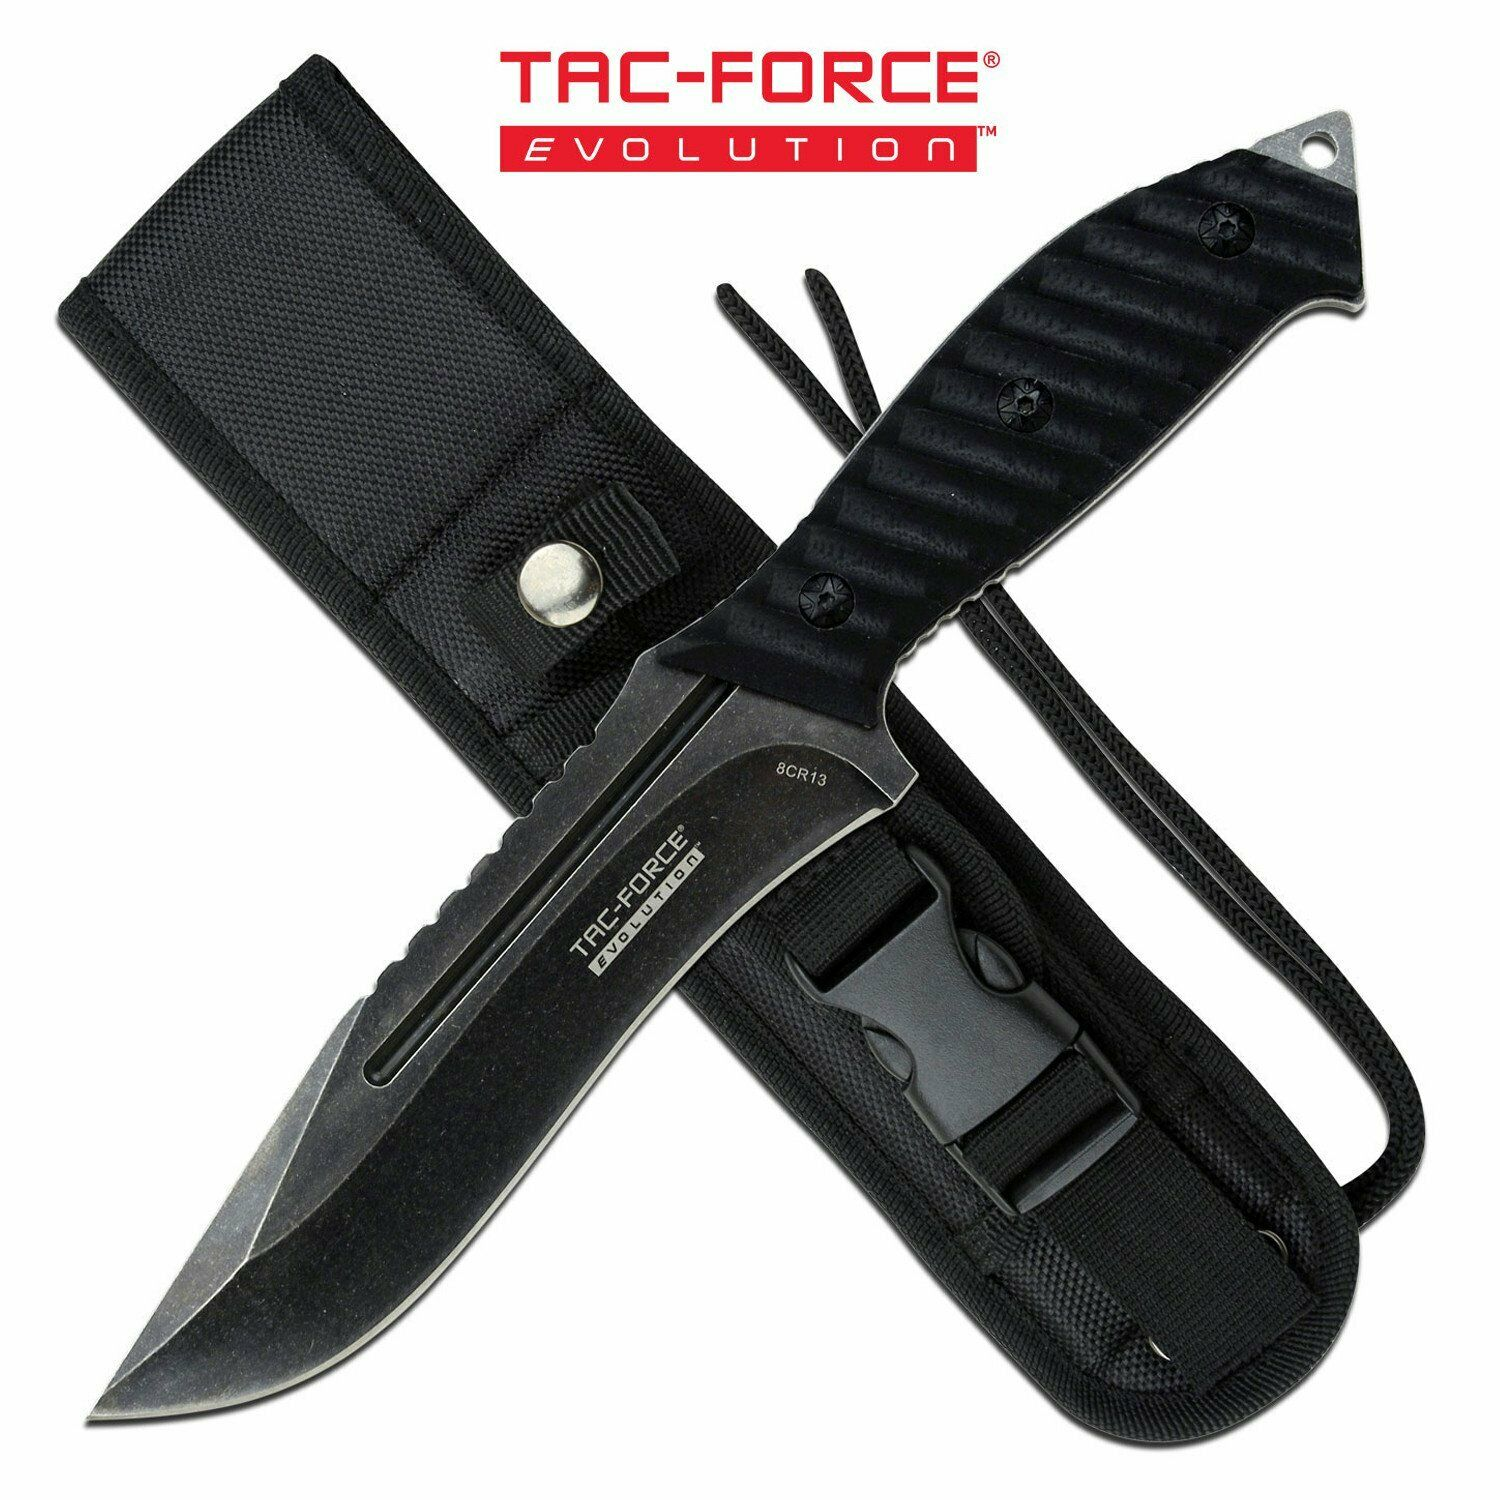 5 mm Thick Horizontal Concealed Carry Bushcraft EDC Fixed Blade Knife Stonewashed with G10 Handle